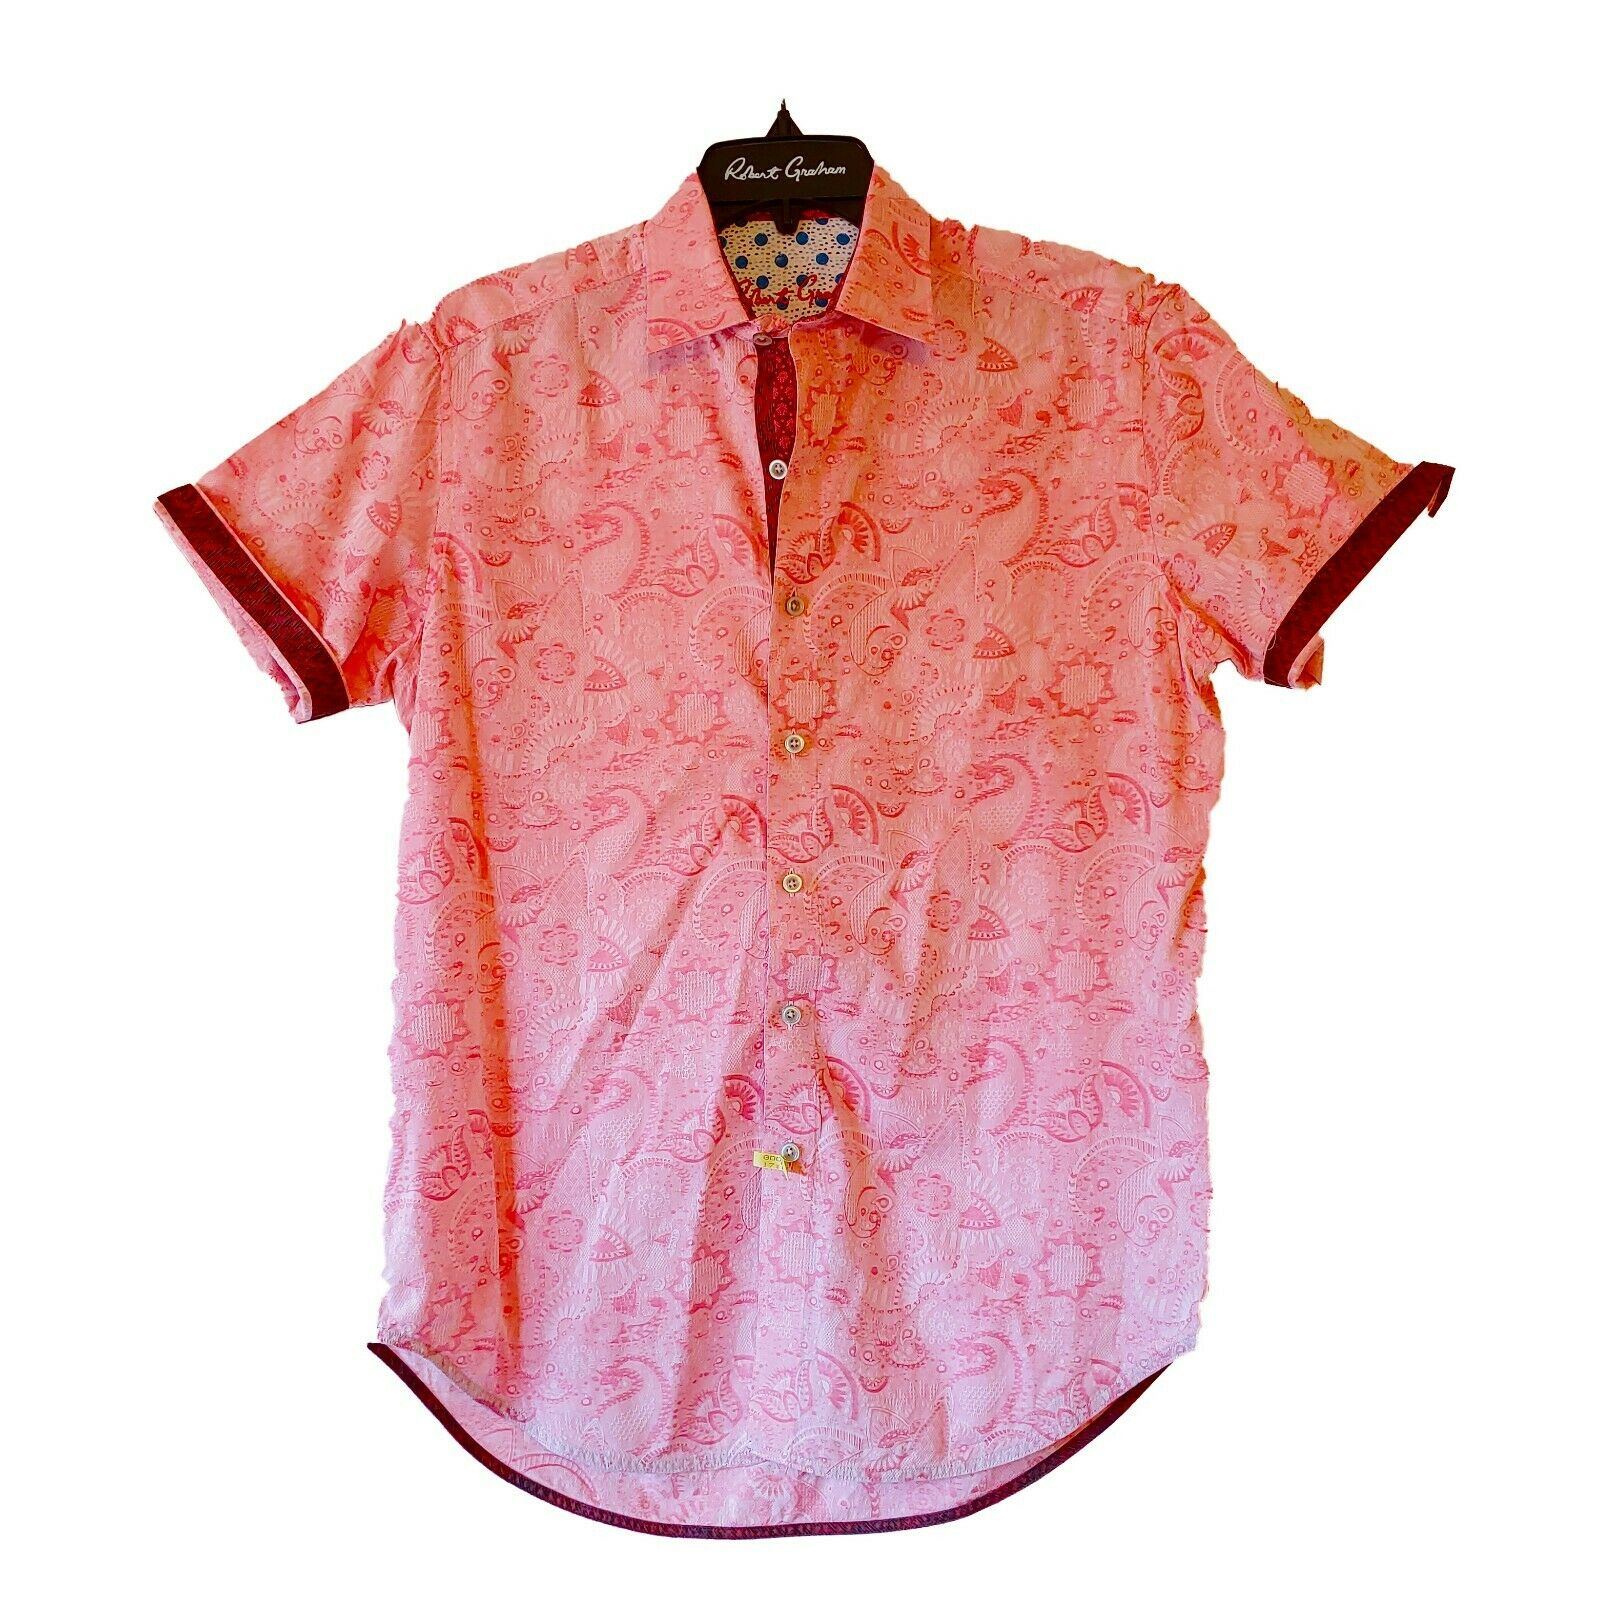 Robert Graham Short Sleeve Pink Floral Printed Sport Shirt Classic Fit - Medium